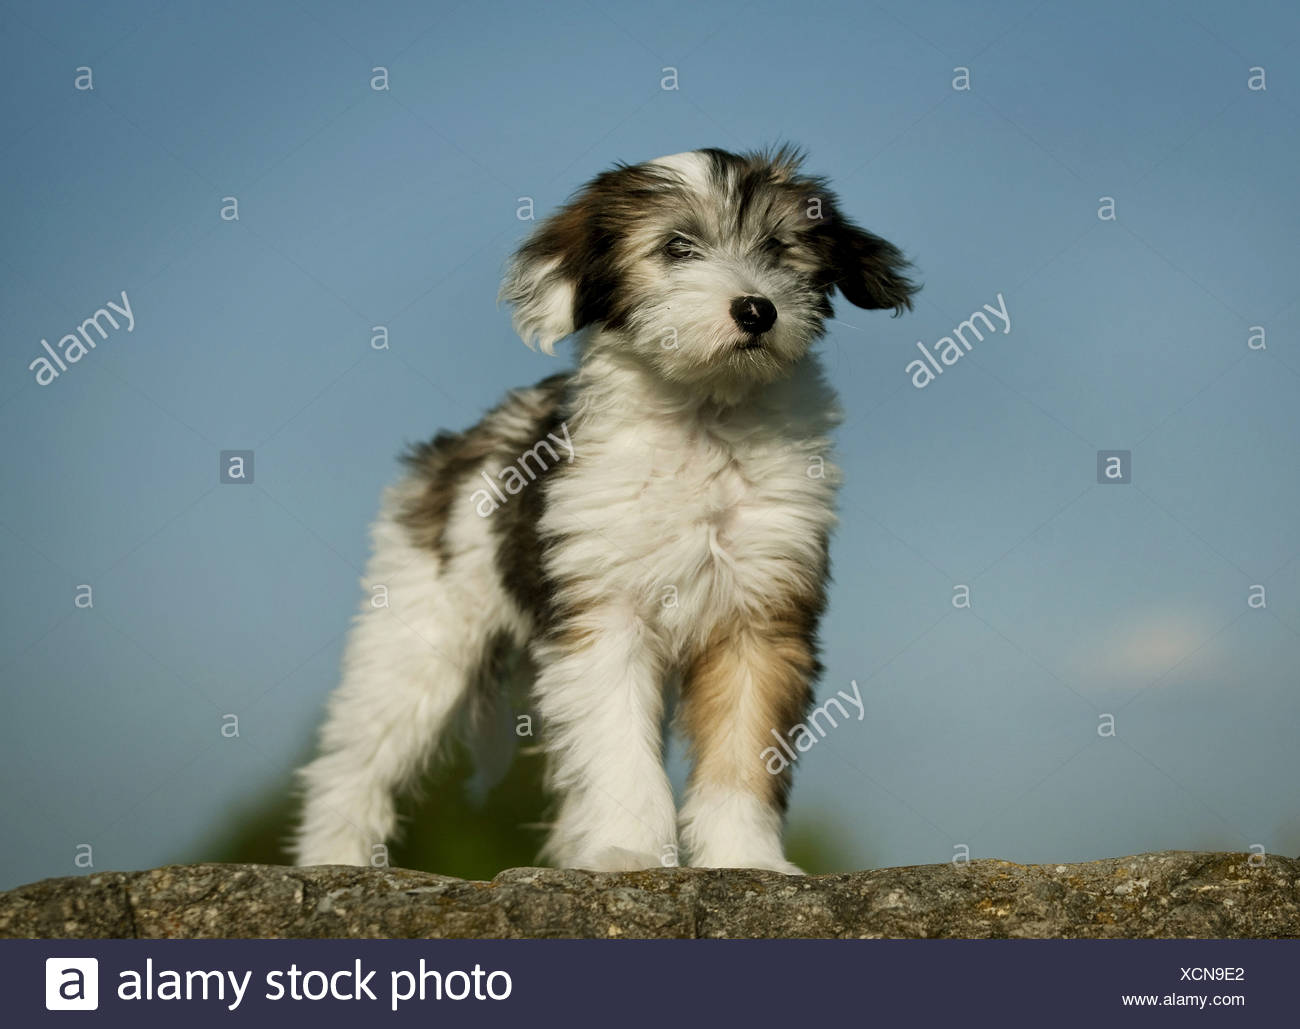 Tibetan Terrier (Canis lupus f. familiaris), brown whith spotted puppy standing on a boulder, Germany - Stock Image